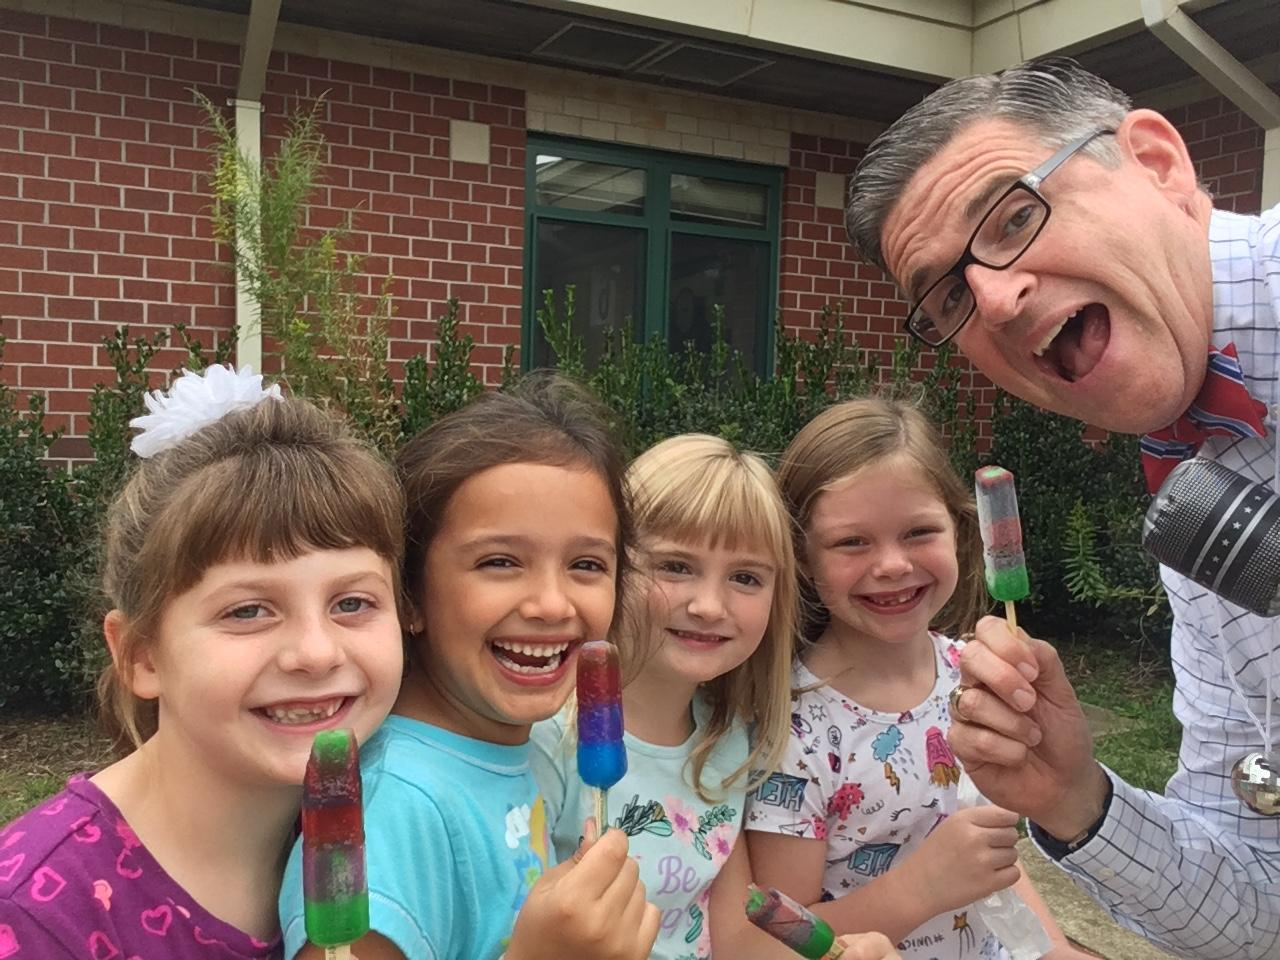 mr. brennan with students eating popsicles